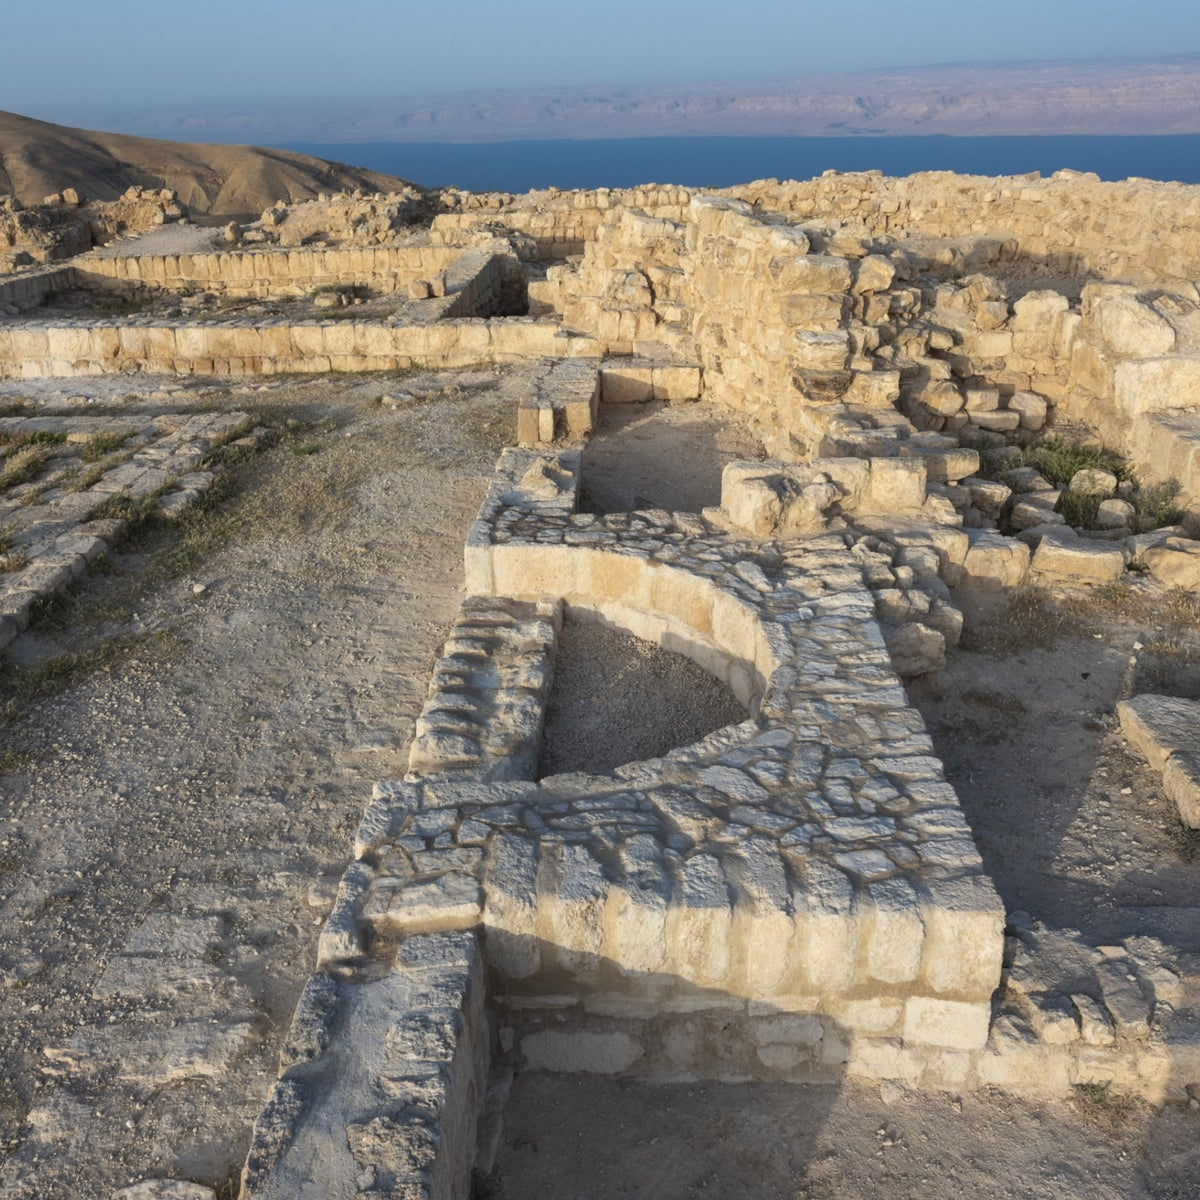 The semi-circle apsidal niche of the royal Herodian throne seat